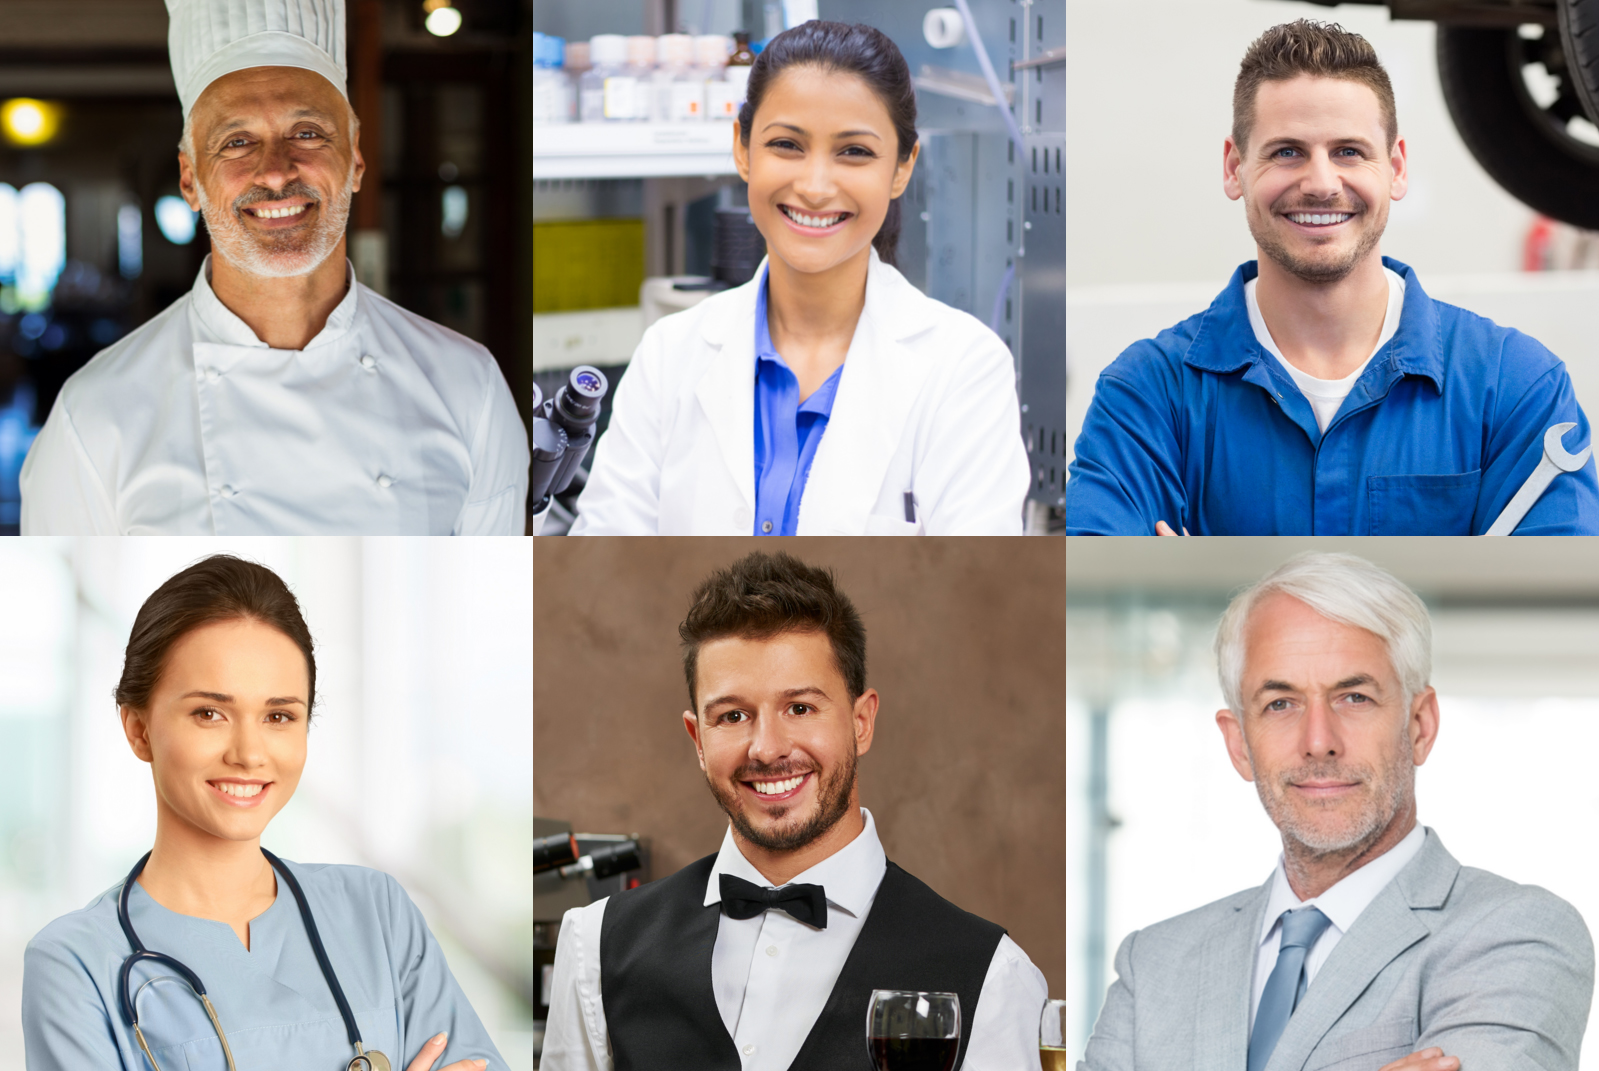 A collage of people showcasing various professional uniforms